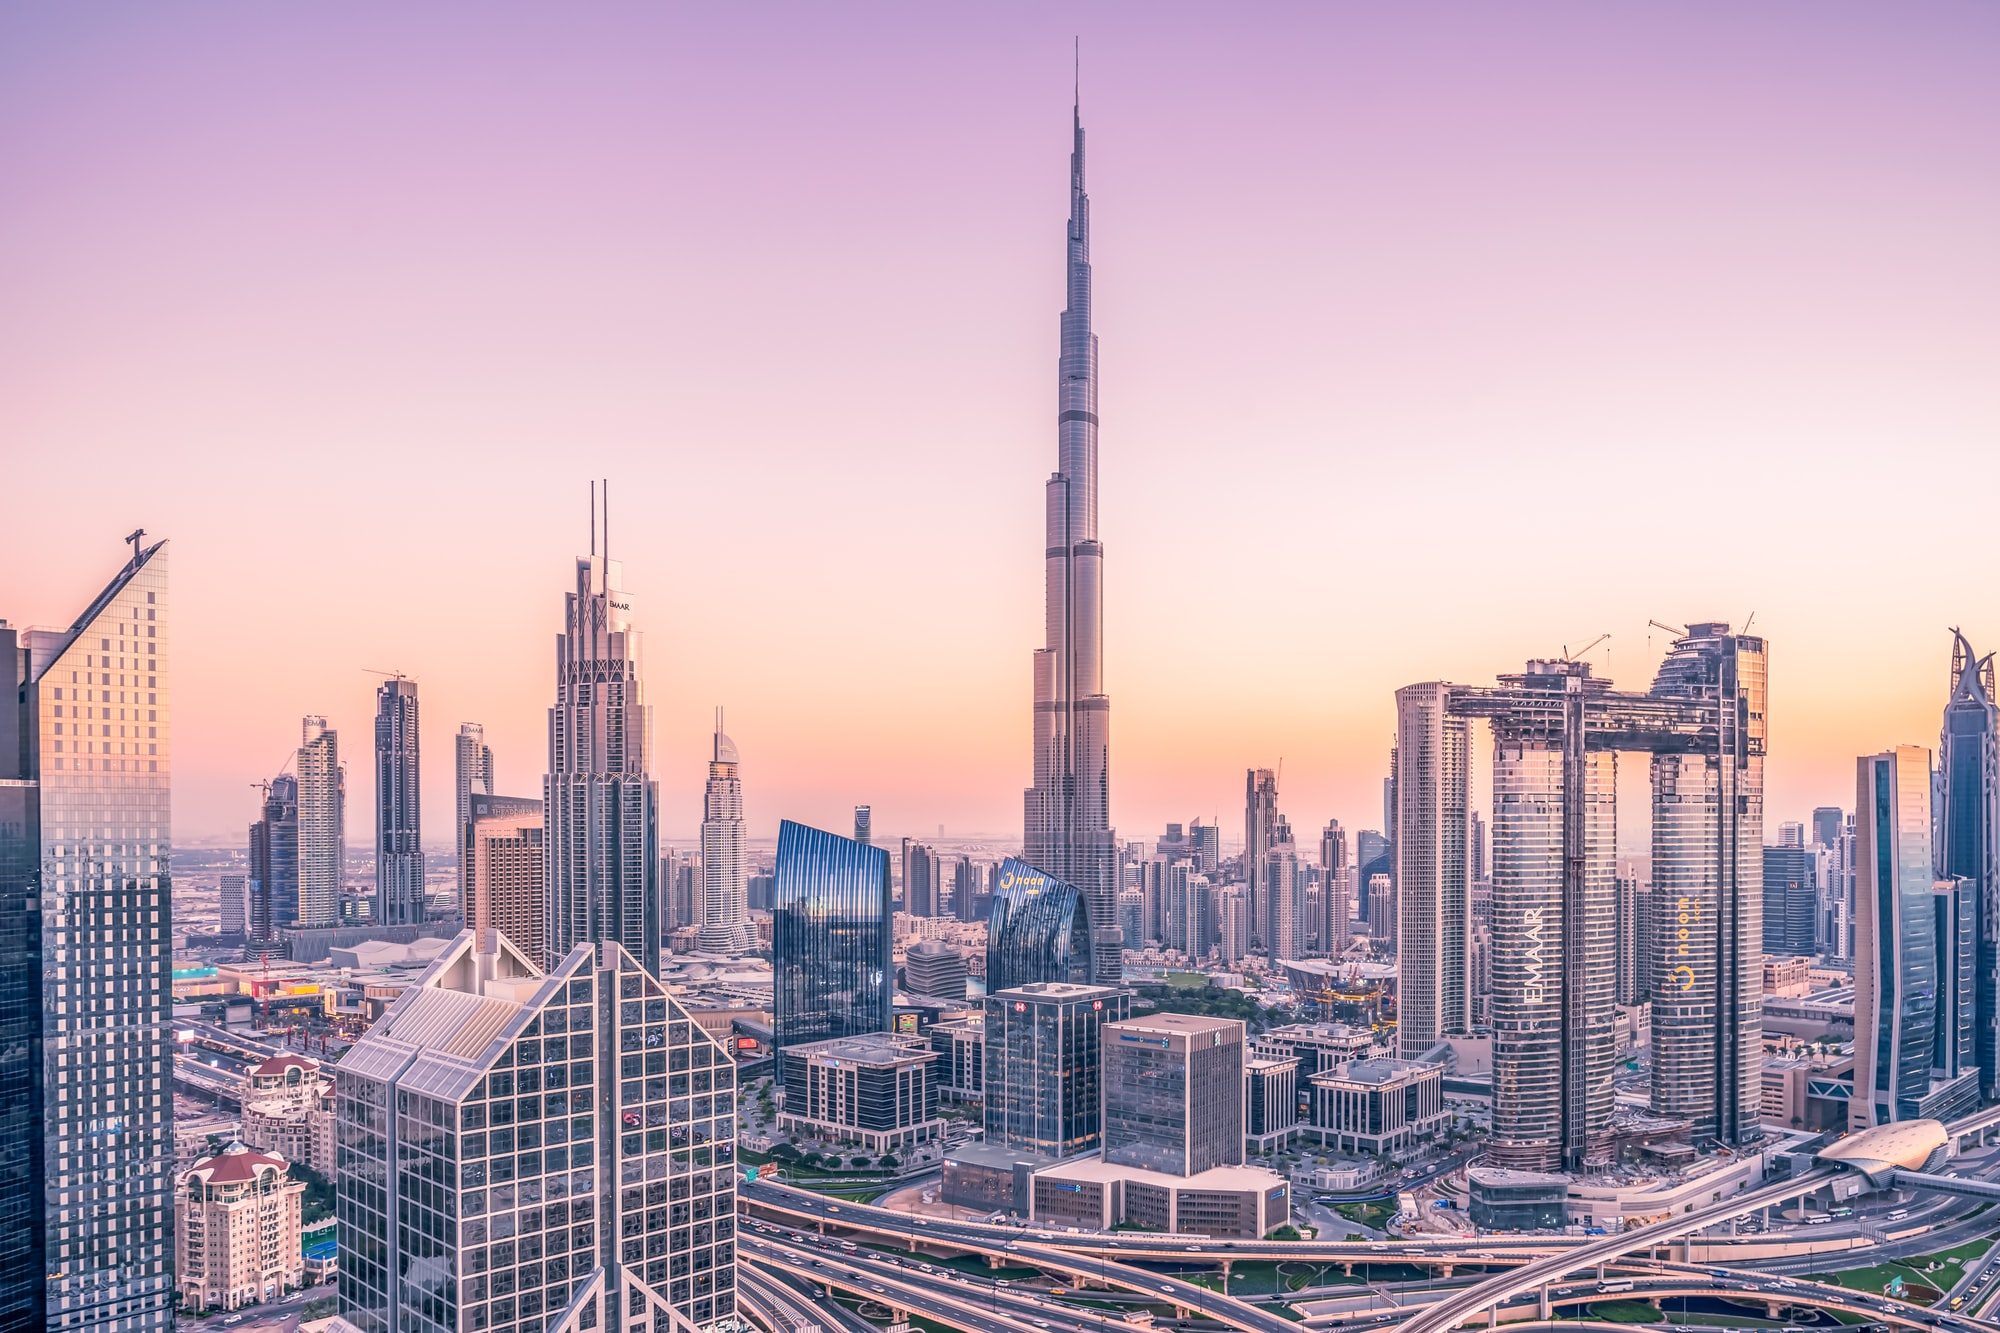 flying to dubai? here are the few things to note